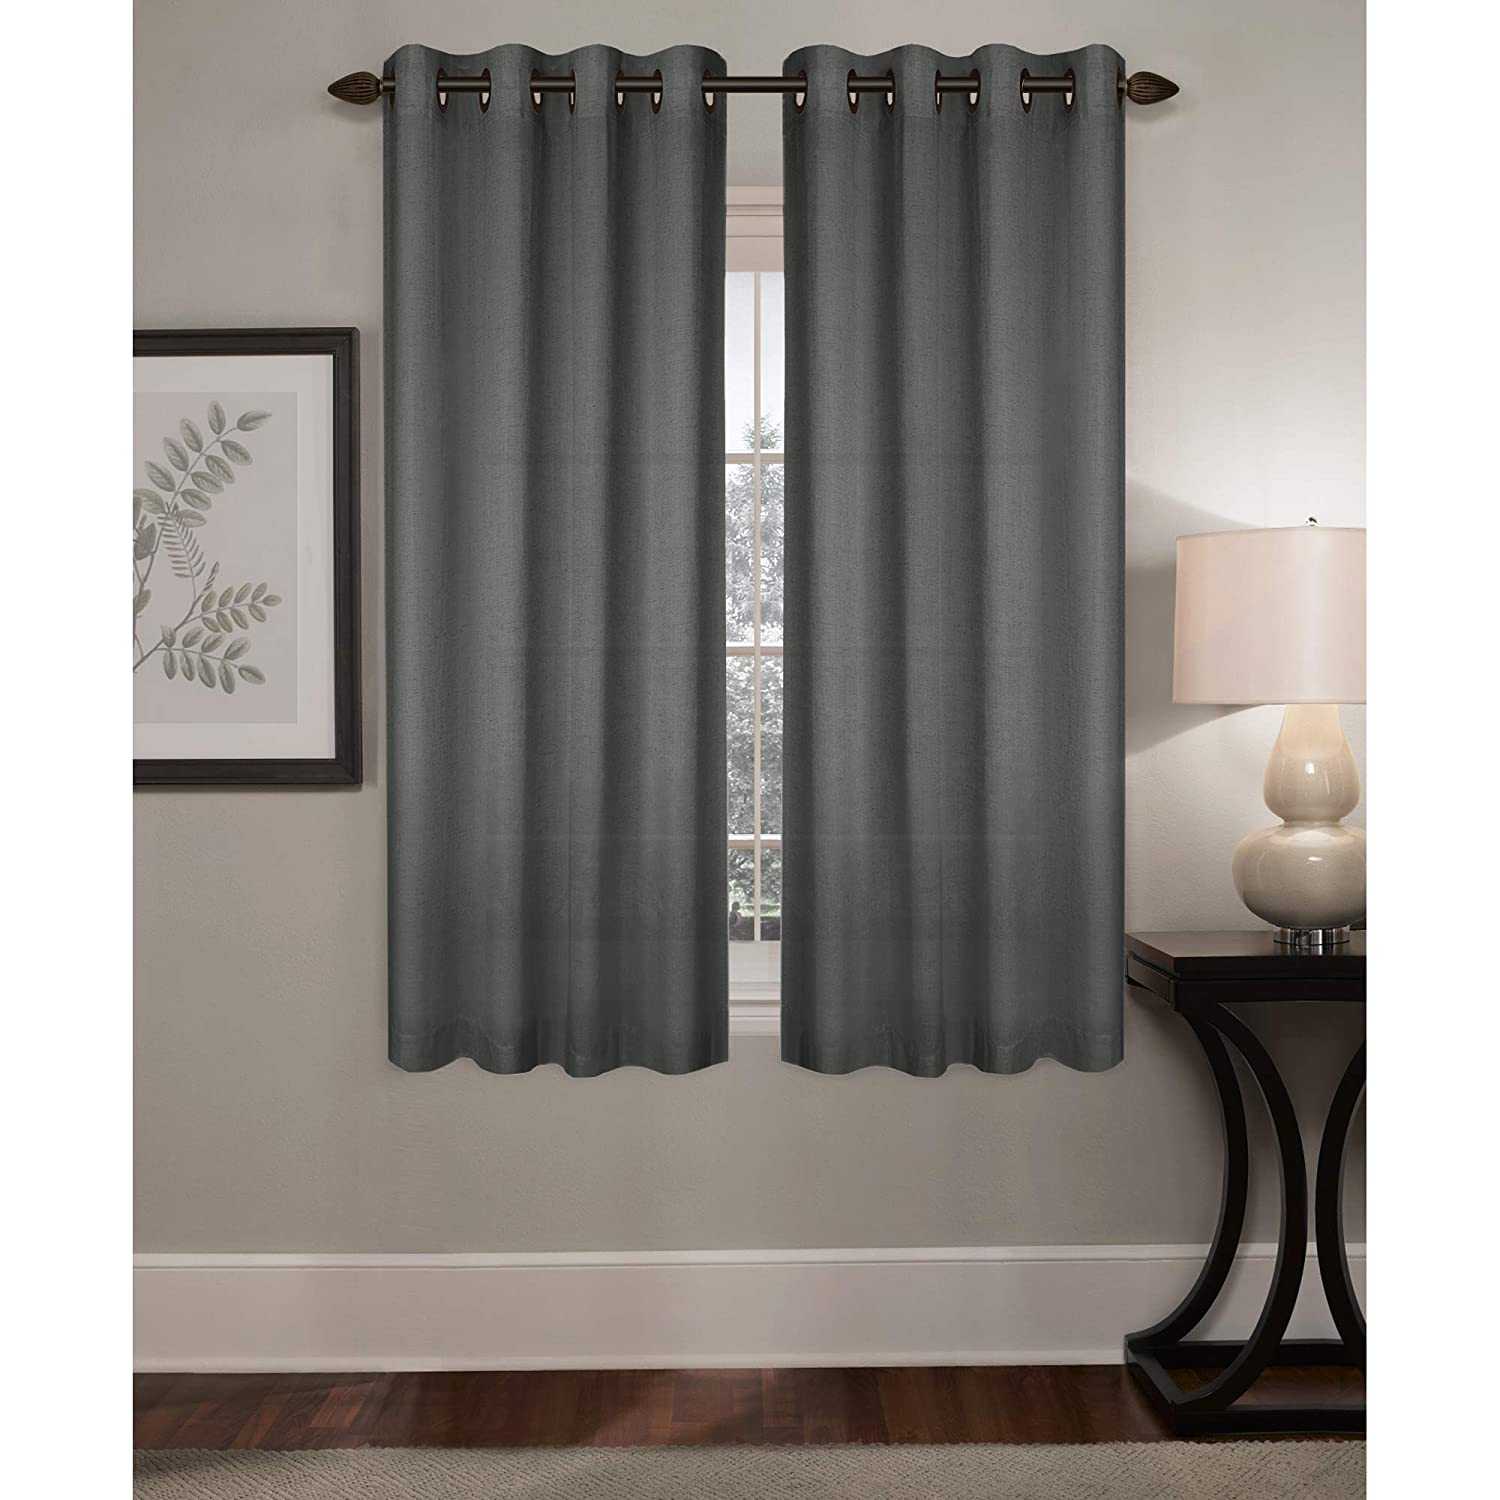 MAYTEX Dakota Window Curtain Charcoal 50x63